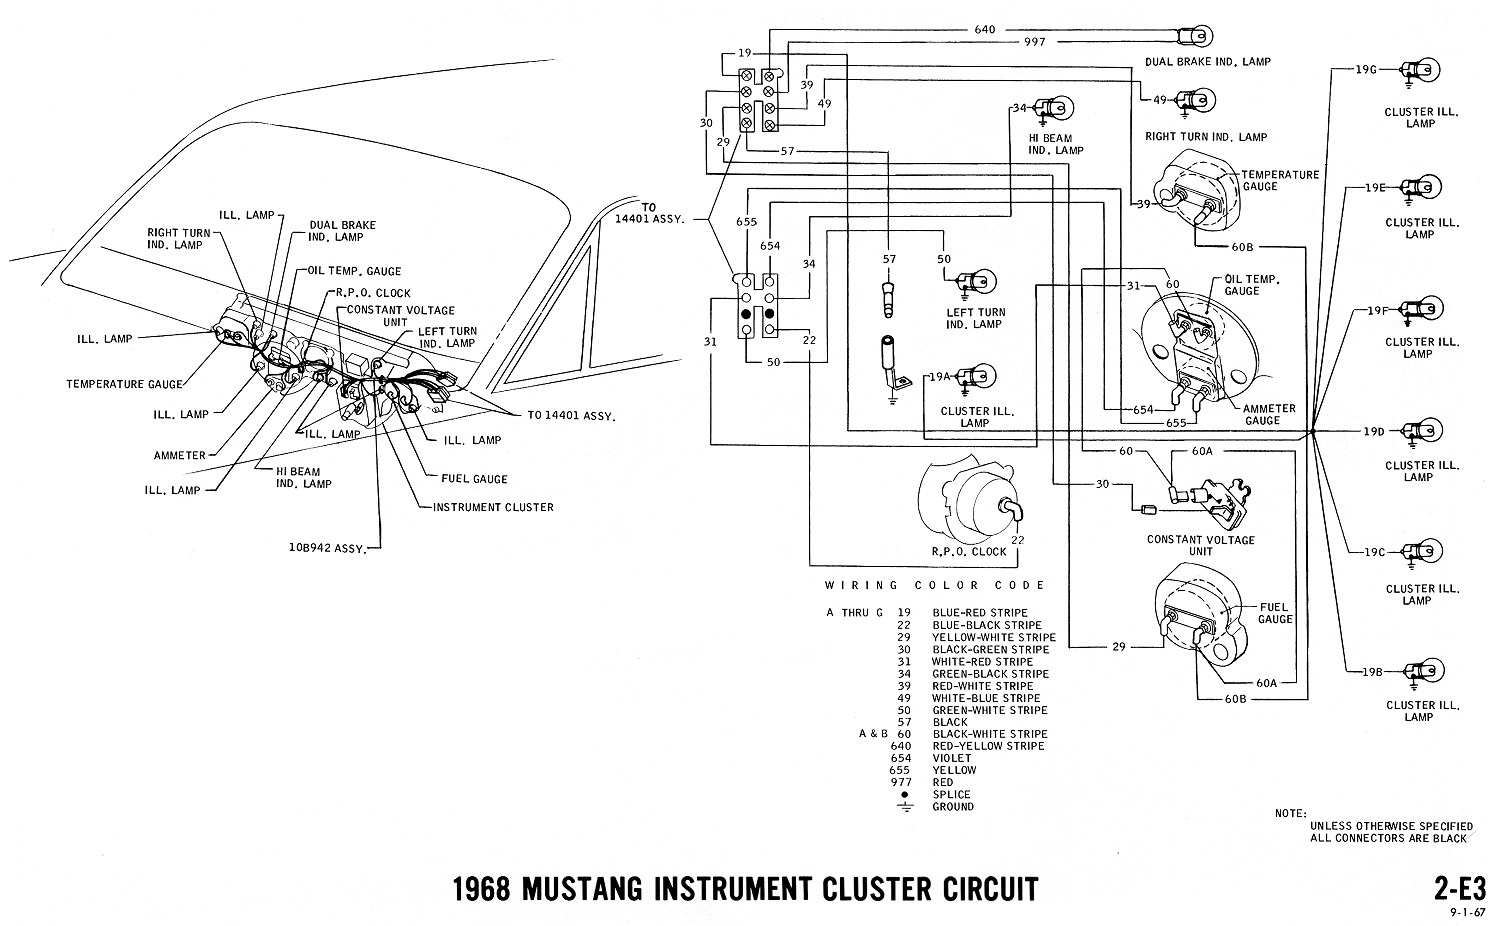 1968 Mustang Wiring Diagram Vacuum Schematics on 1973 mustang mach 1 wiring diagram